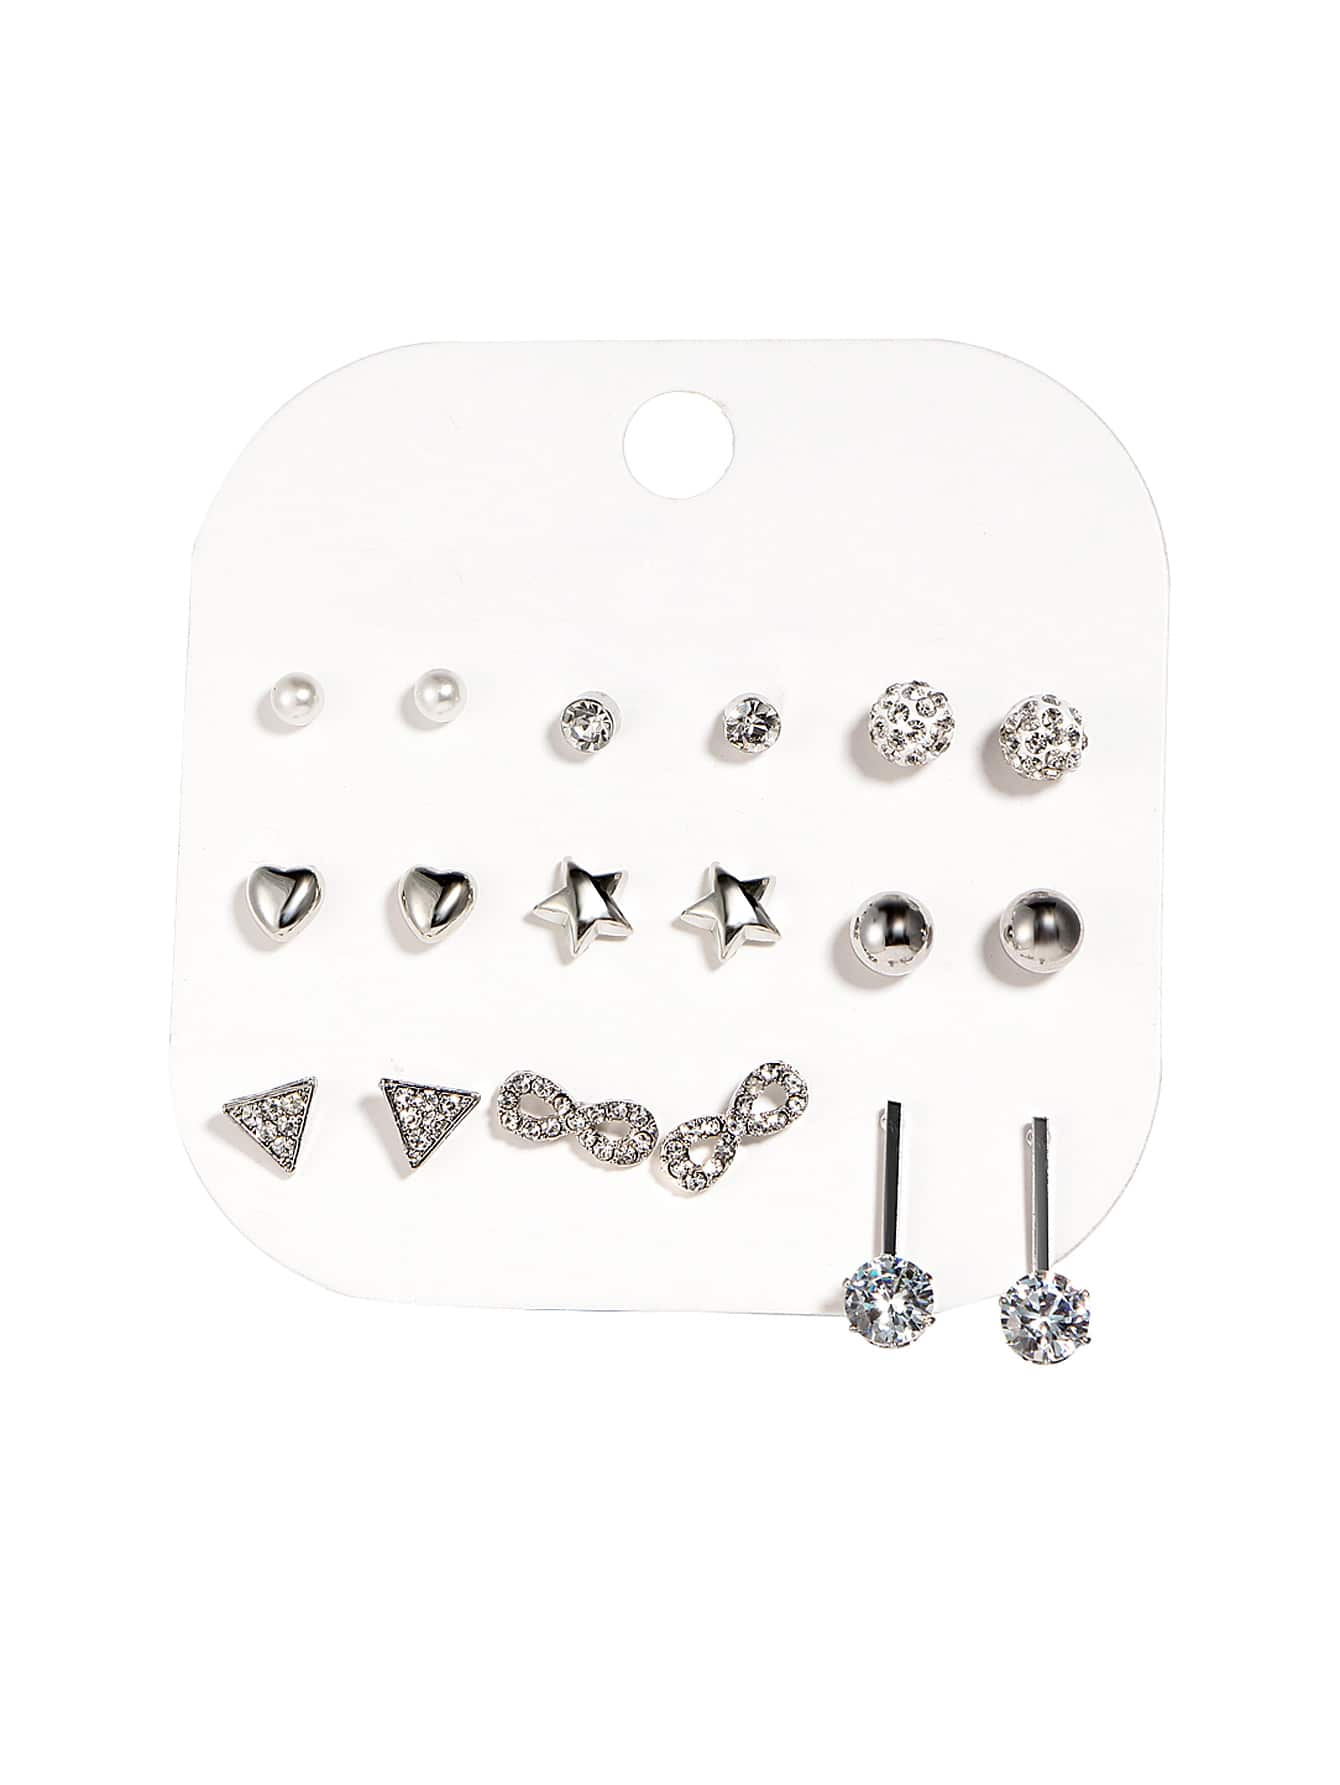 9 Pairs Grey Star & Ball Design Stud Earring Set